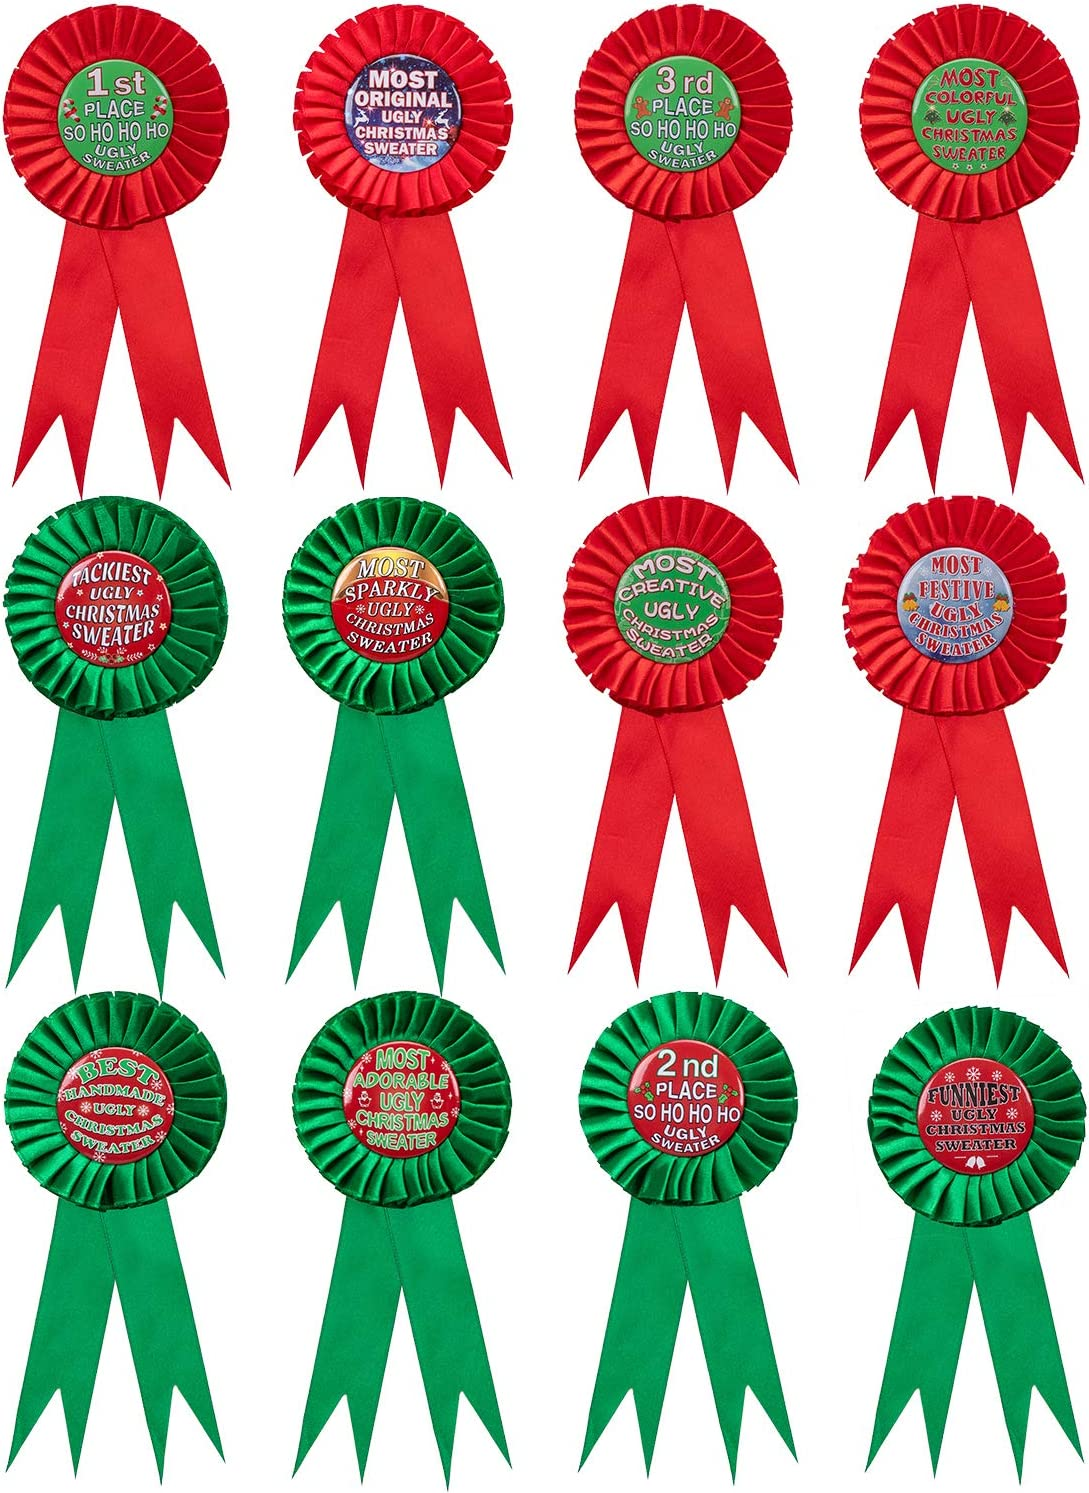 jollylife 12PCS Christmas Ugly Sweater Award Ribbons Decorations Xmas Party Contest Prize Pins Ornaments Decor